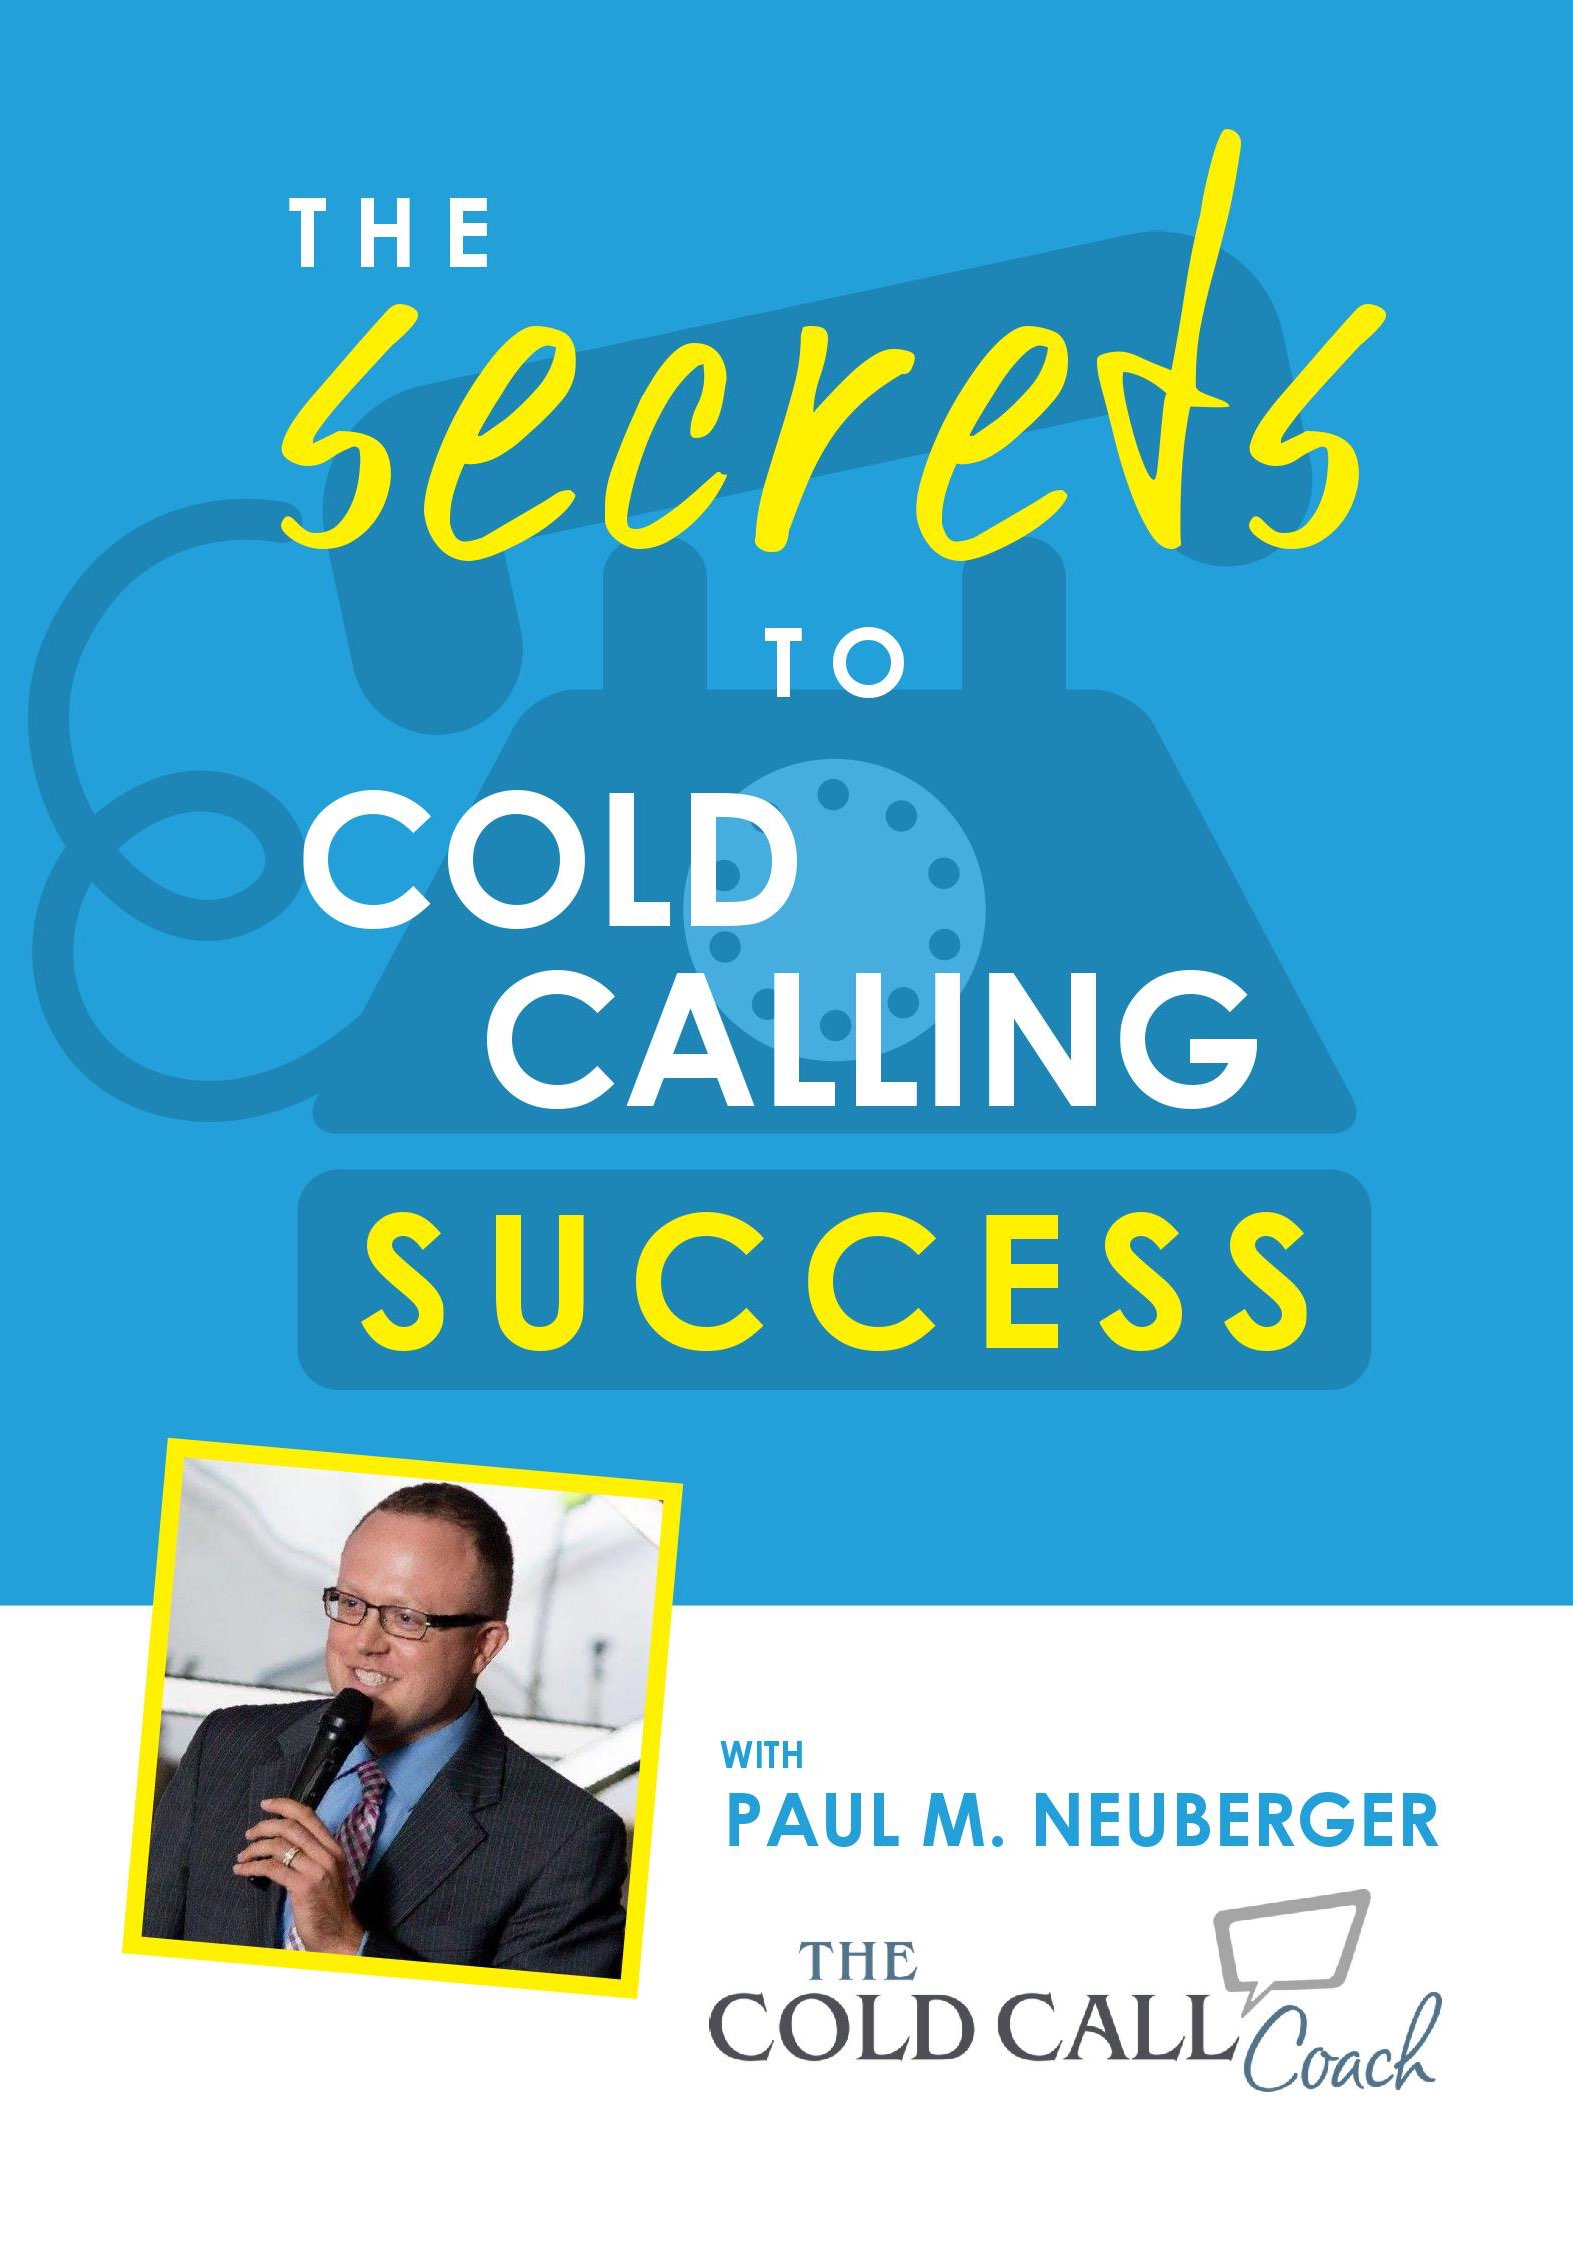 cold-call-coach-dvd